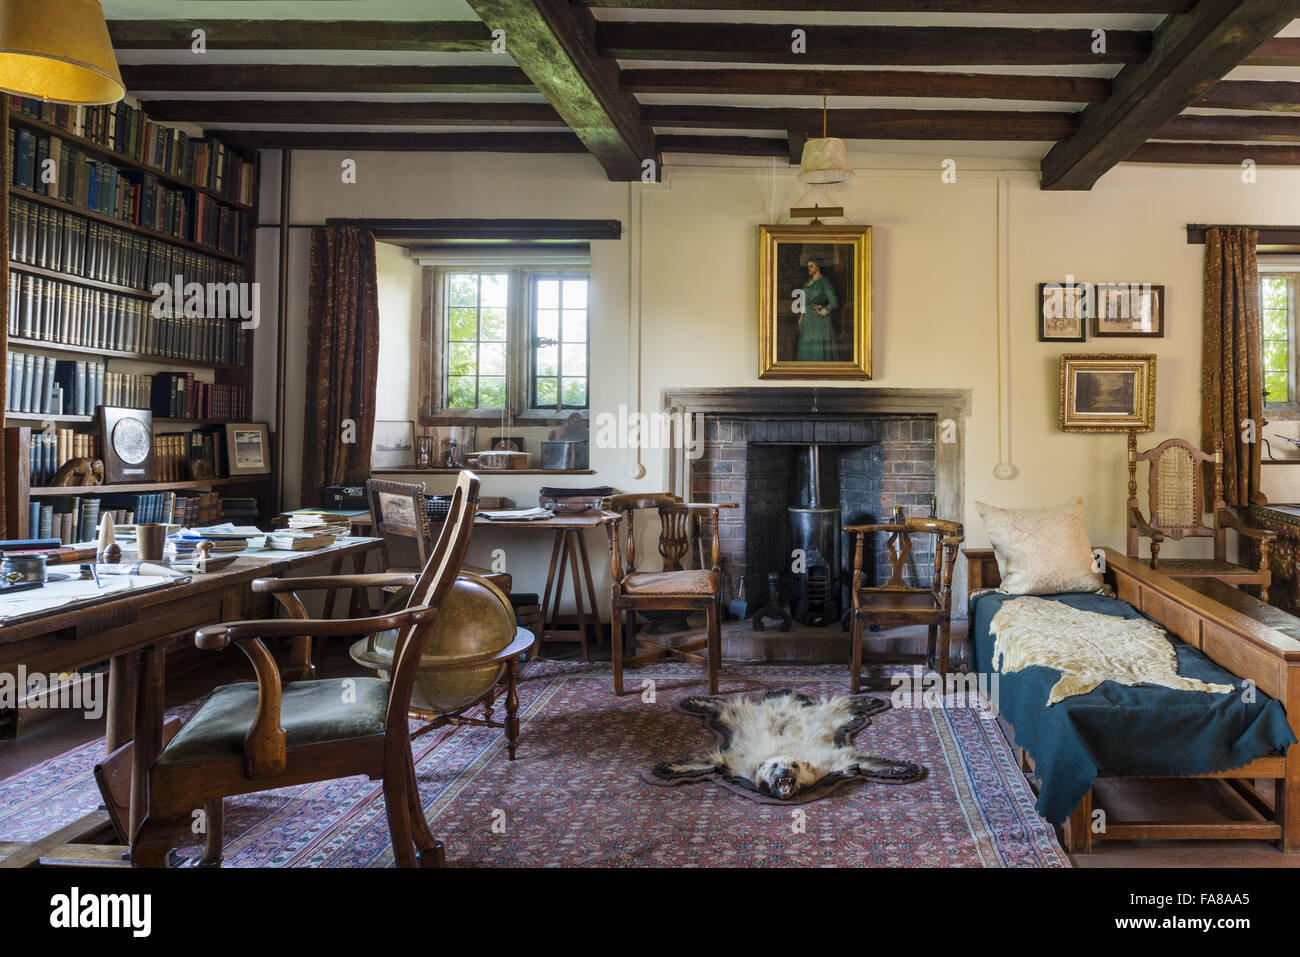 The Study at Bateman's, East Sussex. Bateman's was the home of the writer Rudyard Kipling from 1902 to 1936. Stock Photo